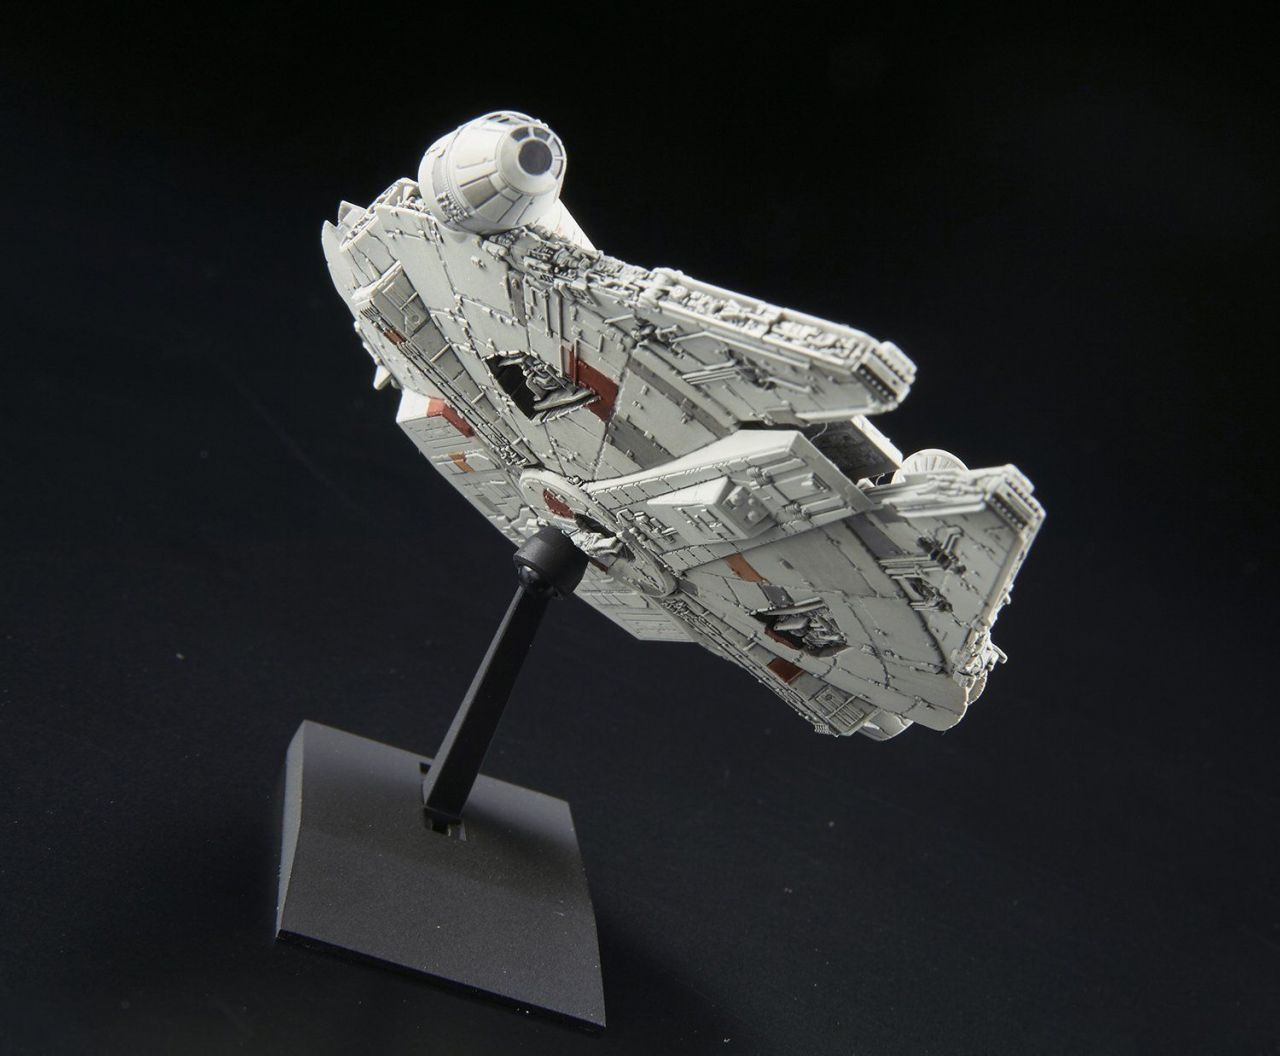 Bandai 0210501 Vehicle Model 006 Millennium Falcon